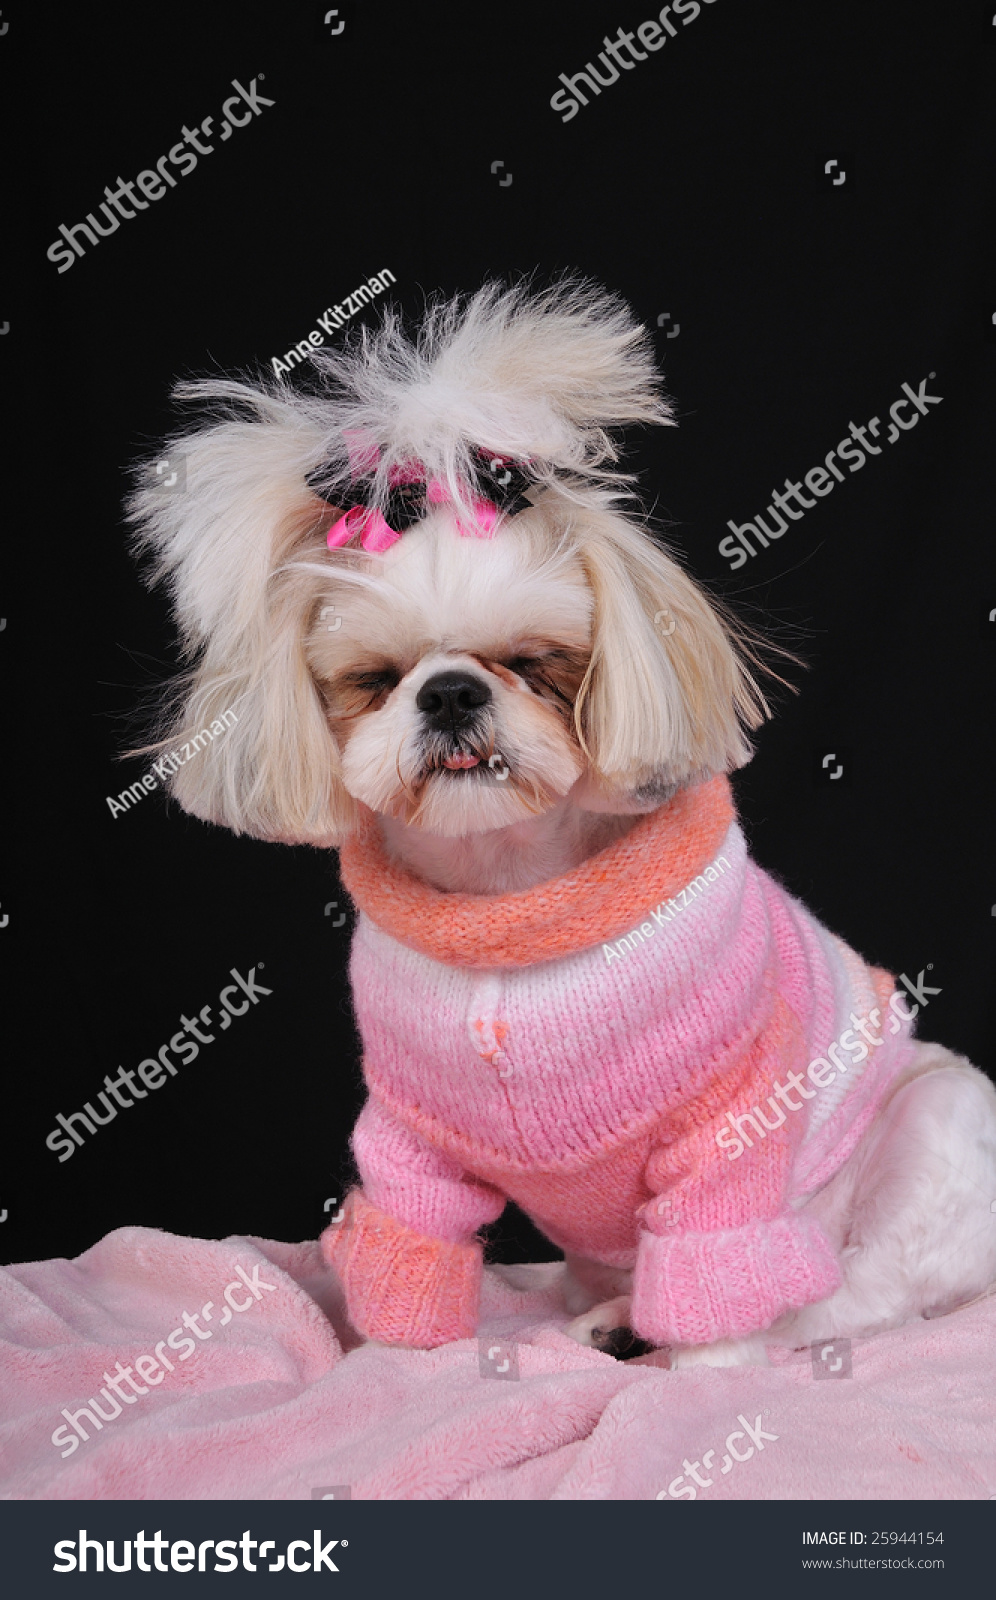 Shih Tzu Puppy Wearing Sweater Bows Stock Photo Edit Now 25944154